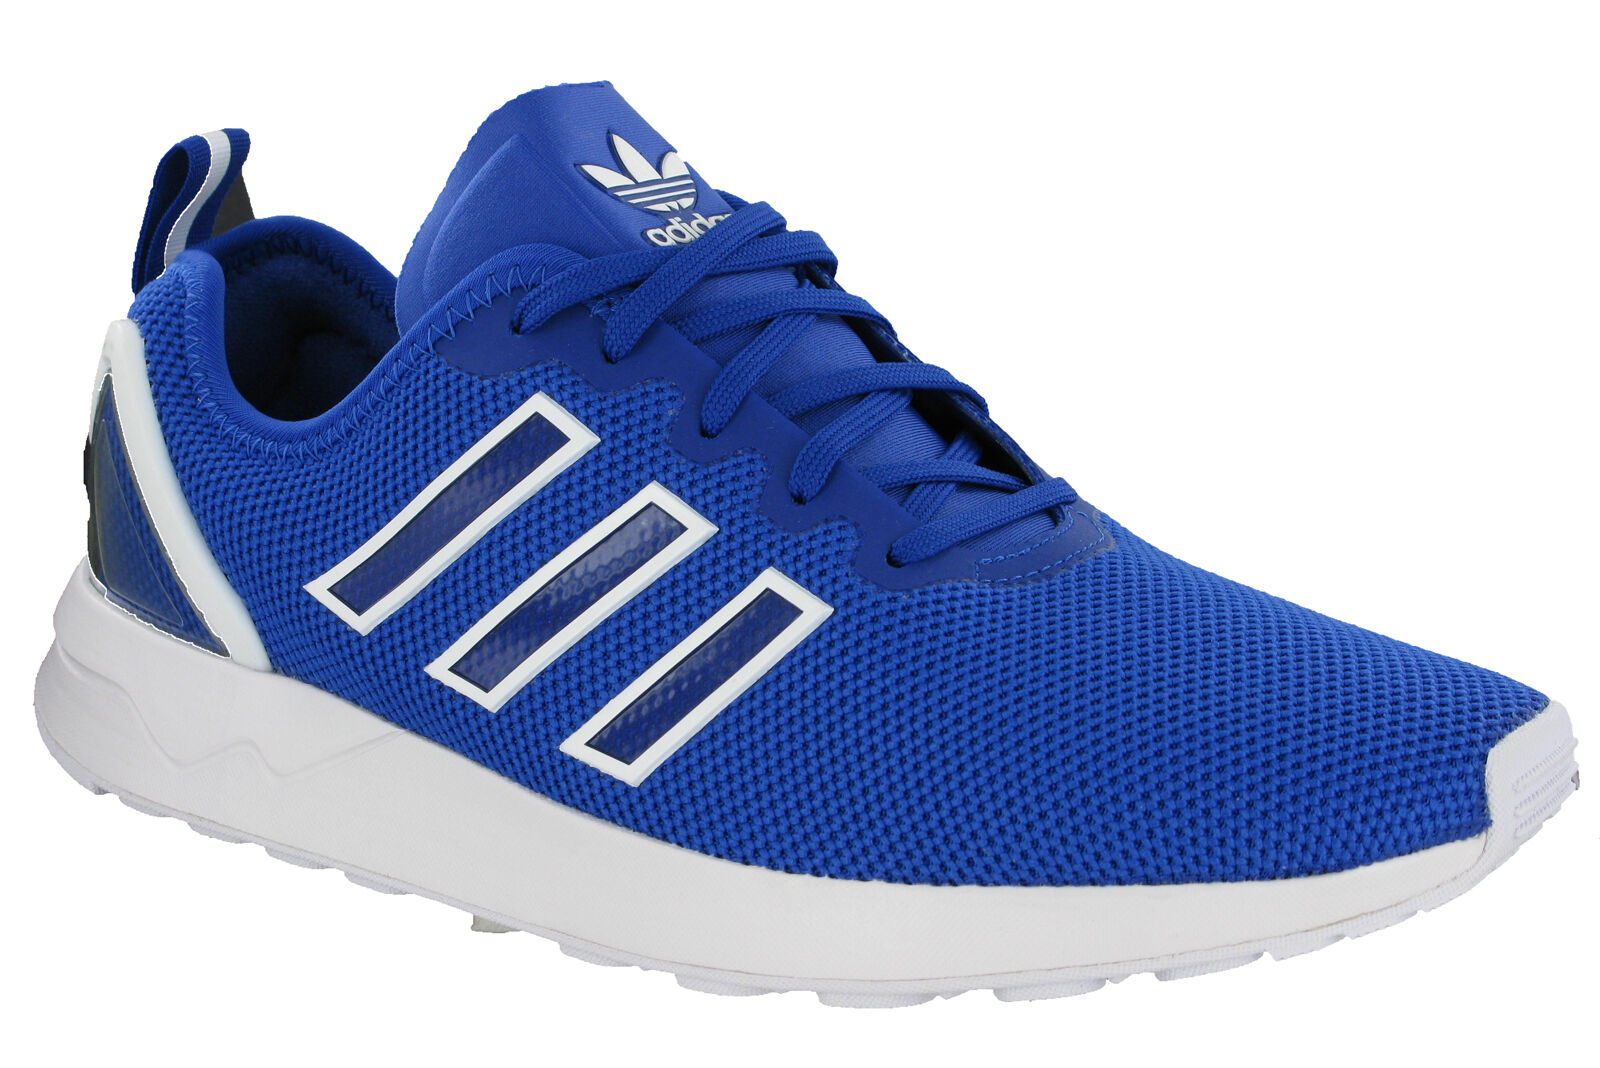 Adidas ZX Flux ADV Trainers Running Sports Mesh bluee Mens Heel Cage S79007